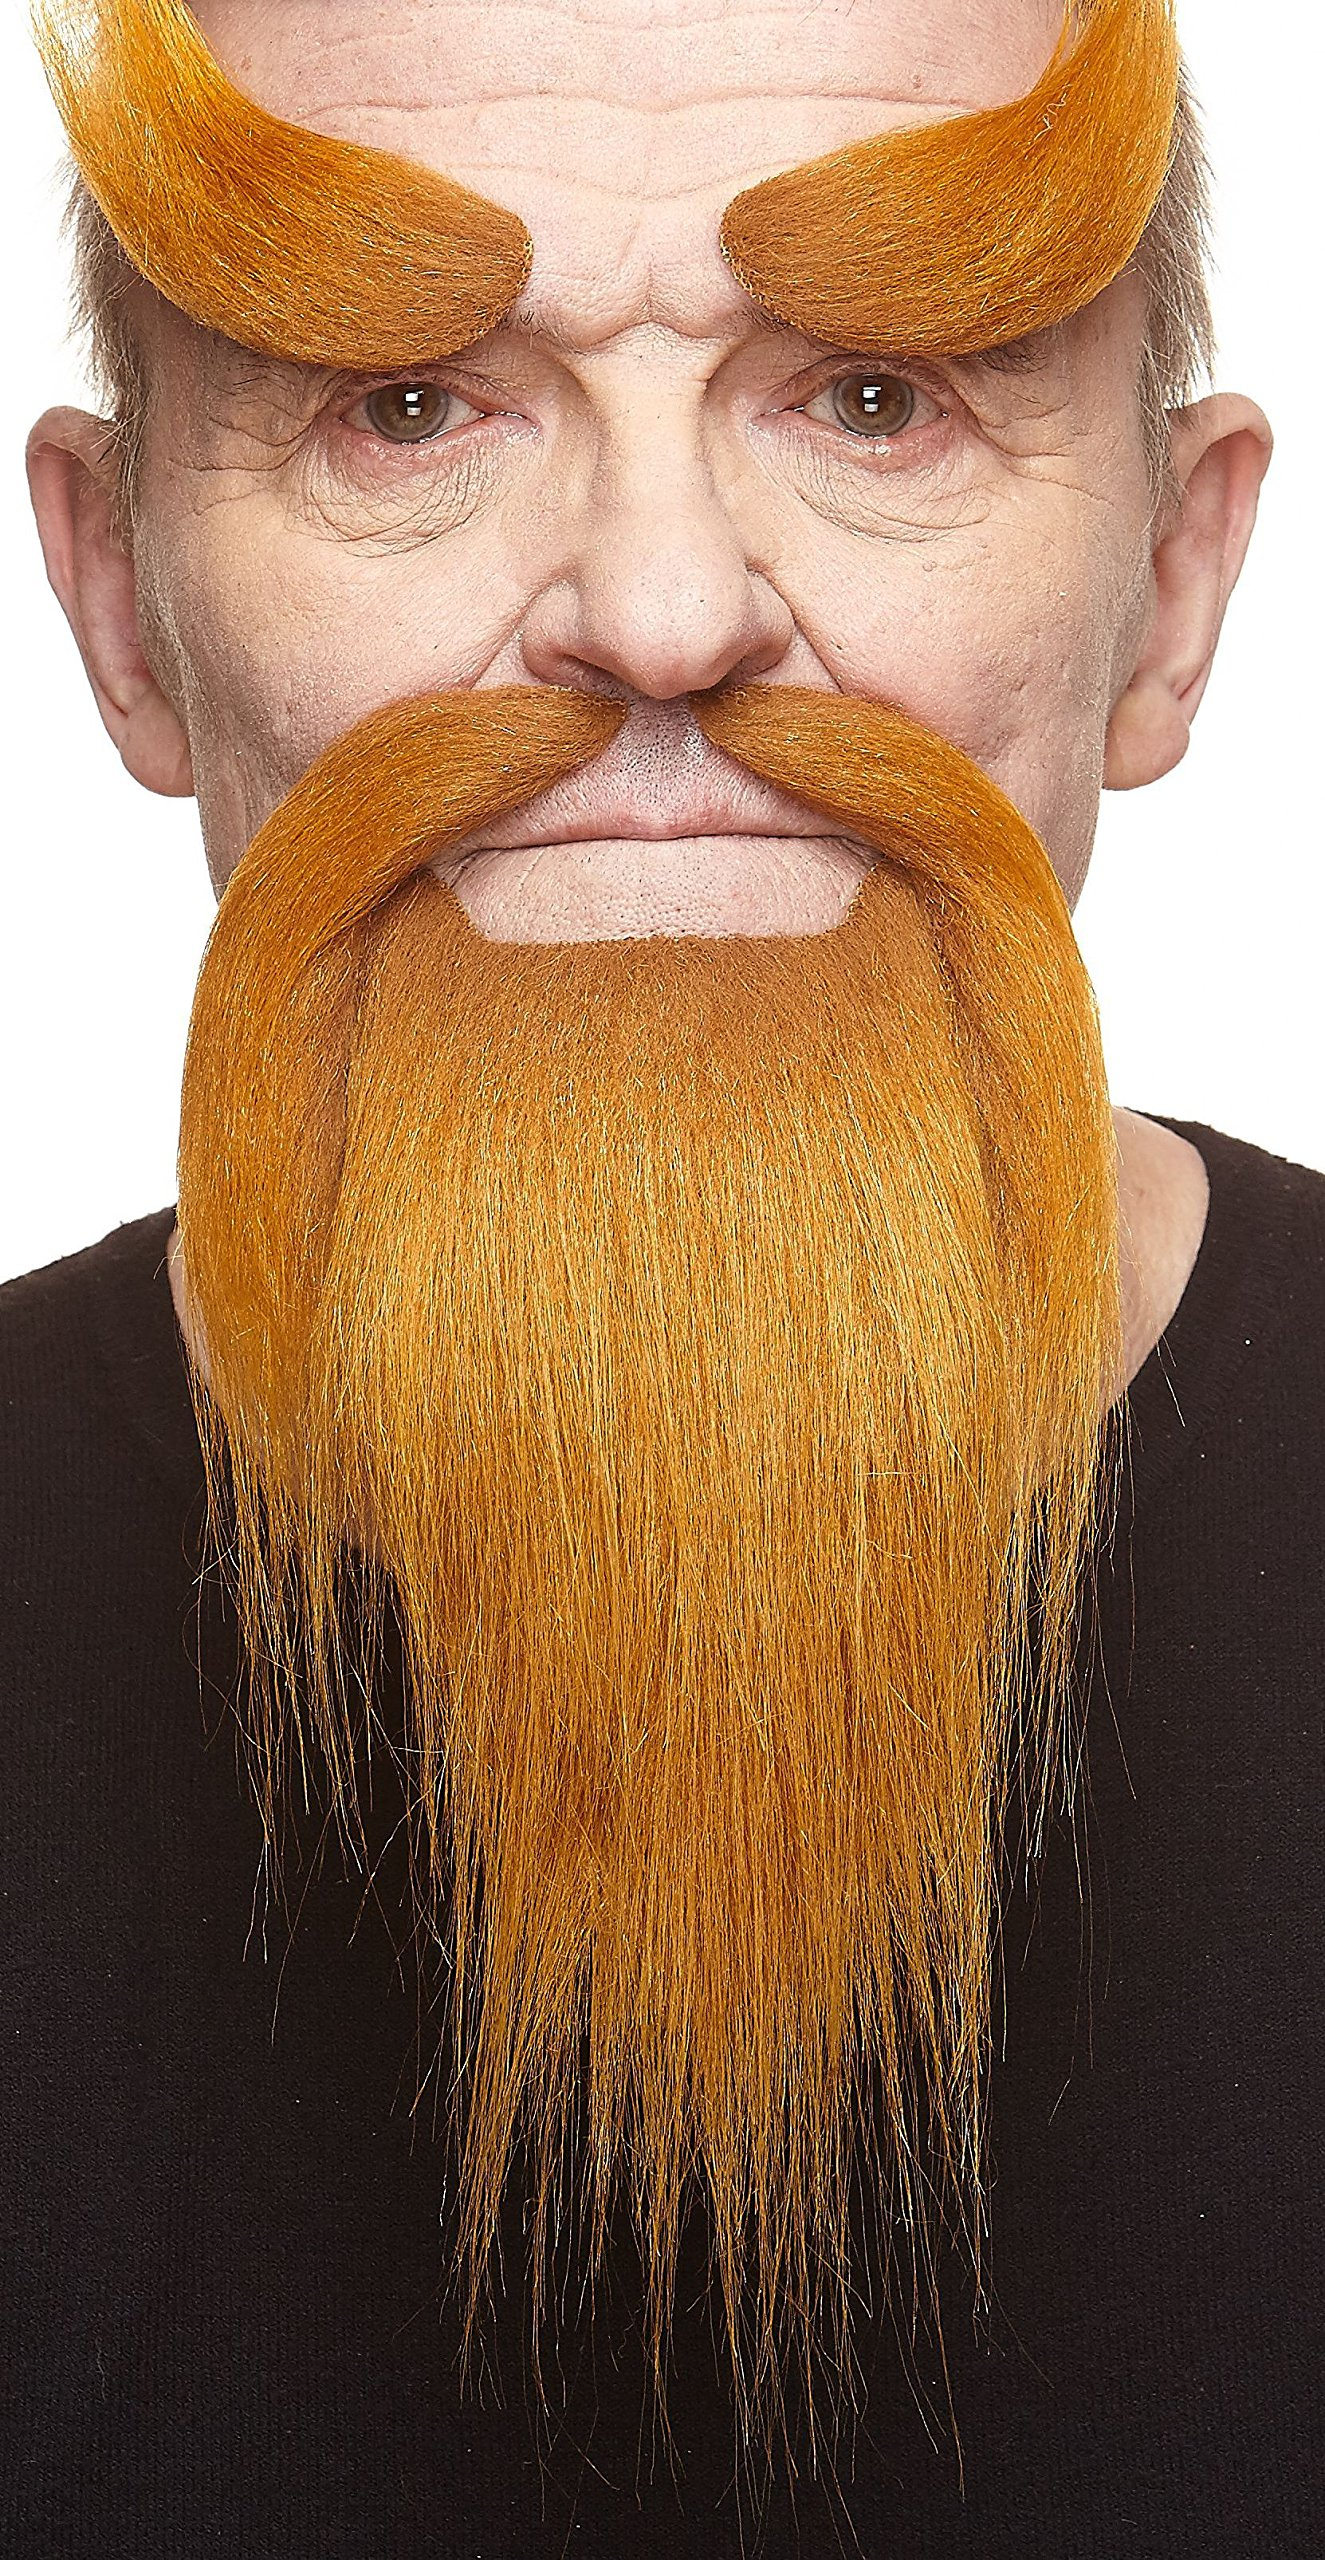 Mustaches Self Adhesive, Novelty, Fake Shaolin Monk Beard, and Eyebrows, Ginger Color